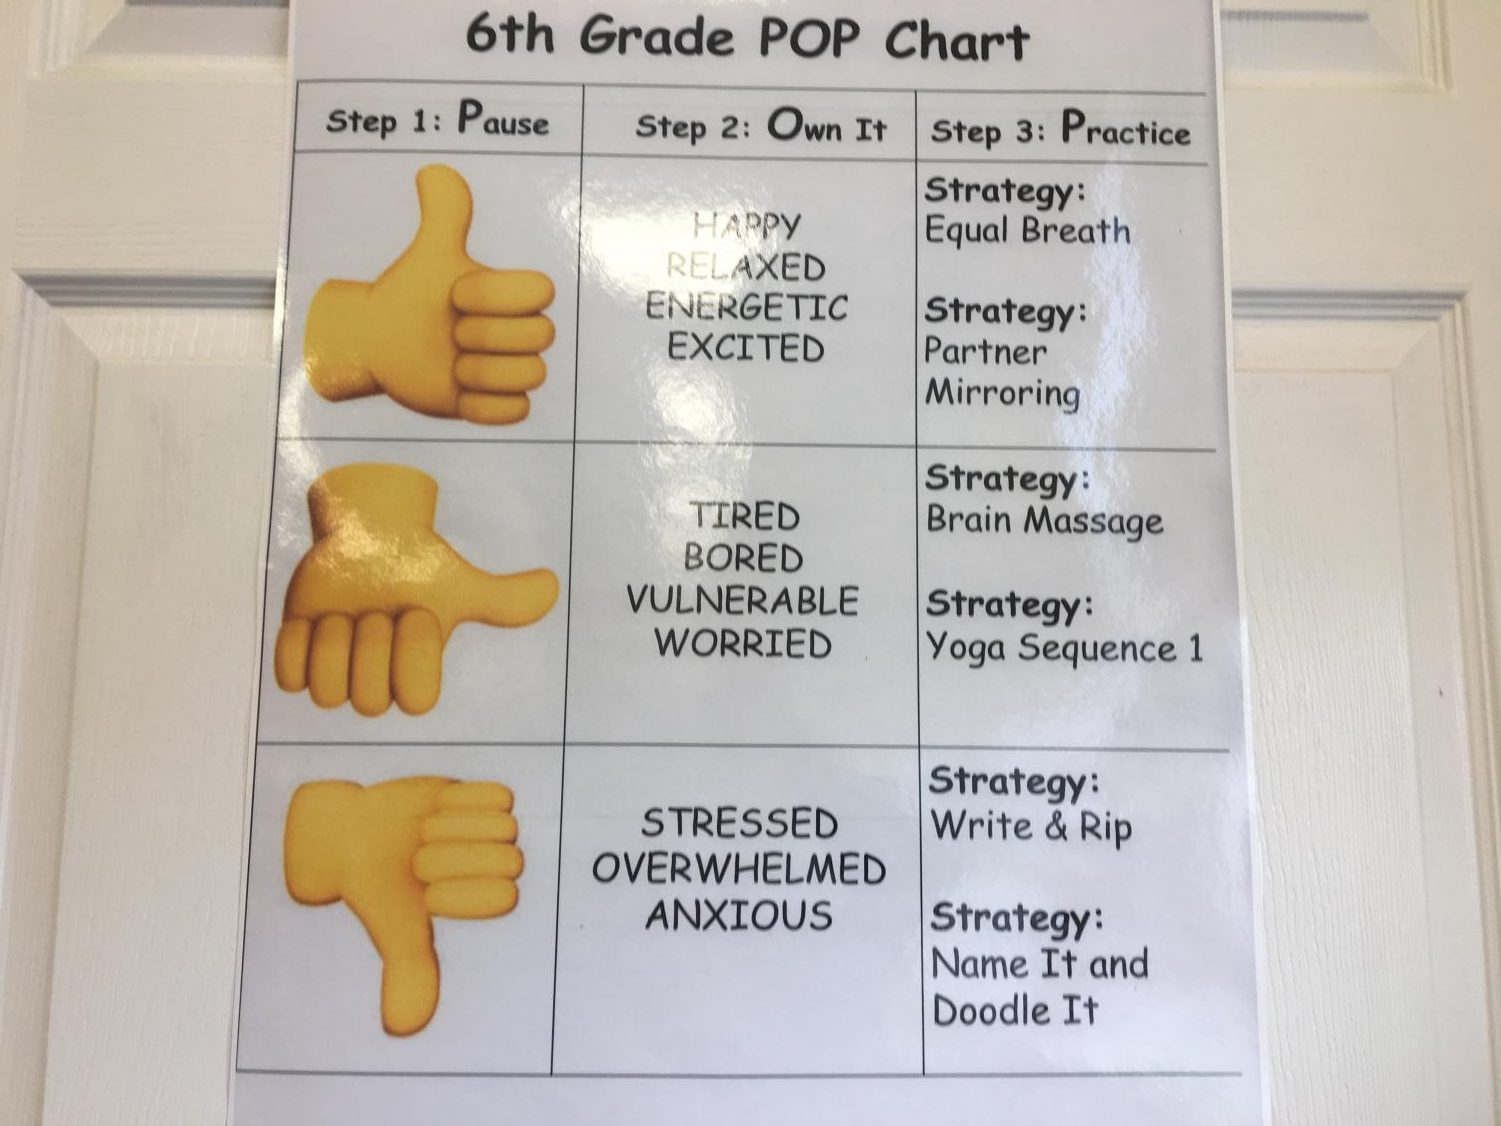 Every sixth grade classroom has the same POP chart. It uses a thumbs up and thumbs down picture to show emotions.